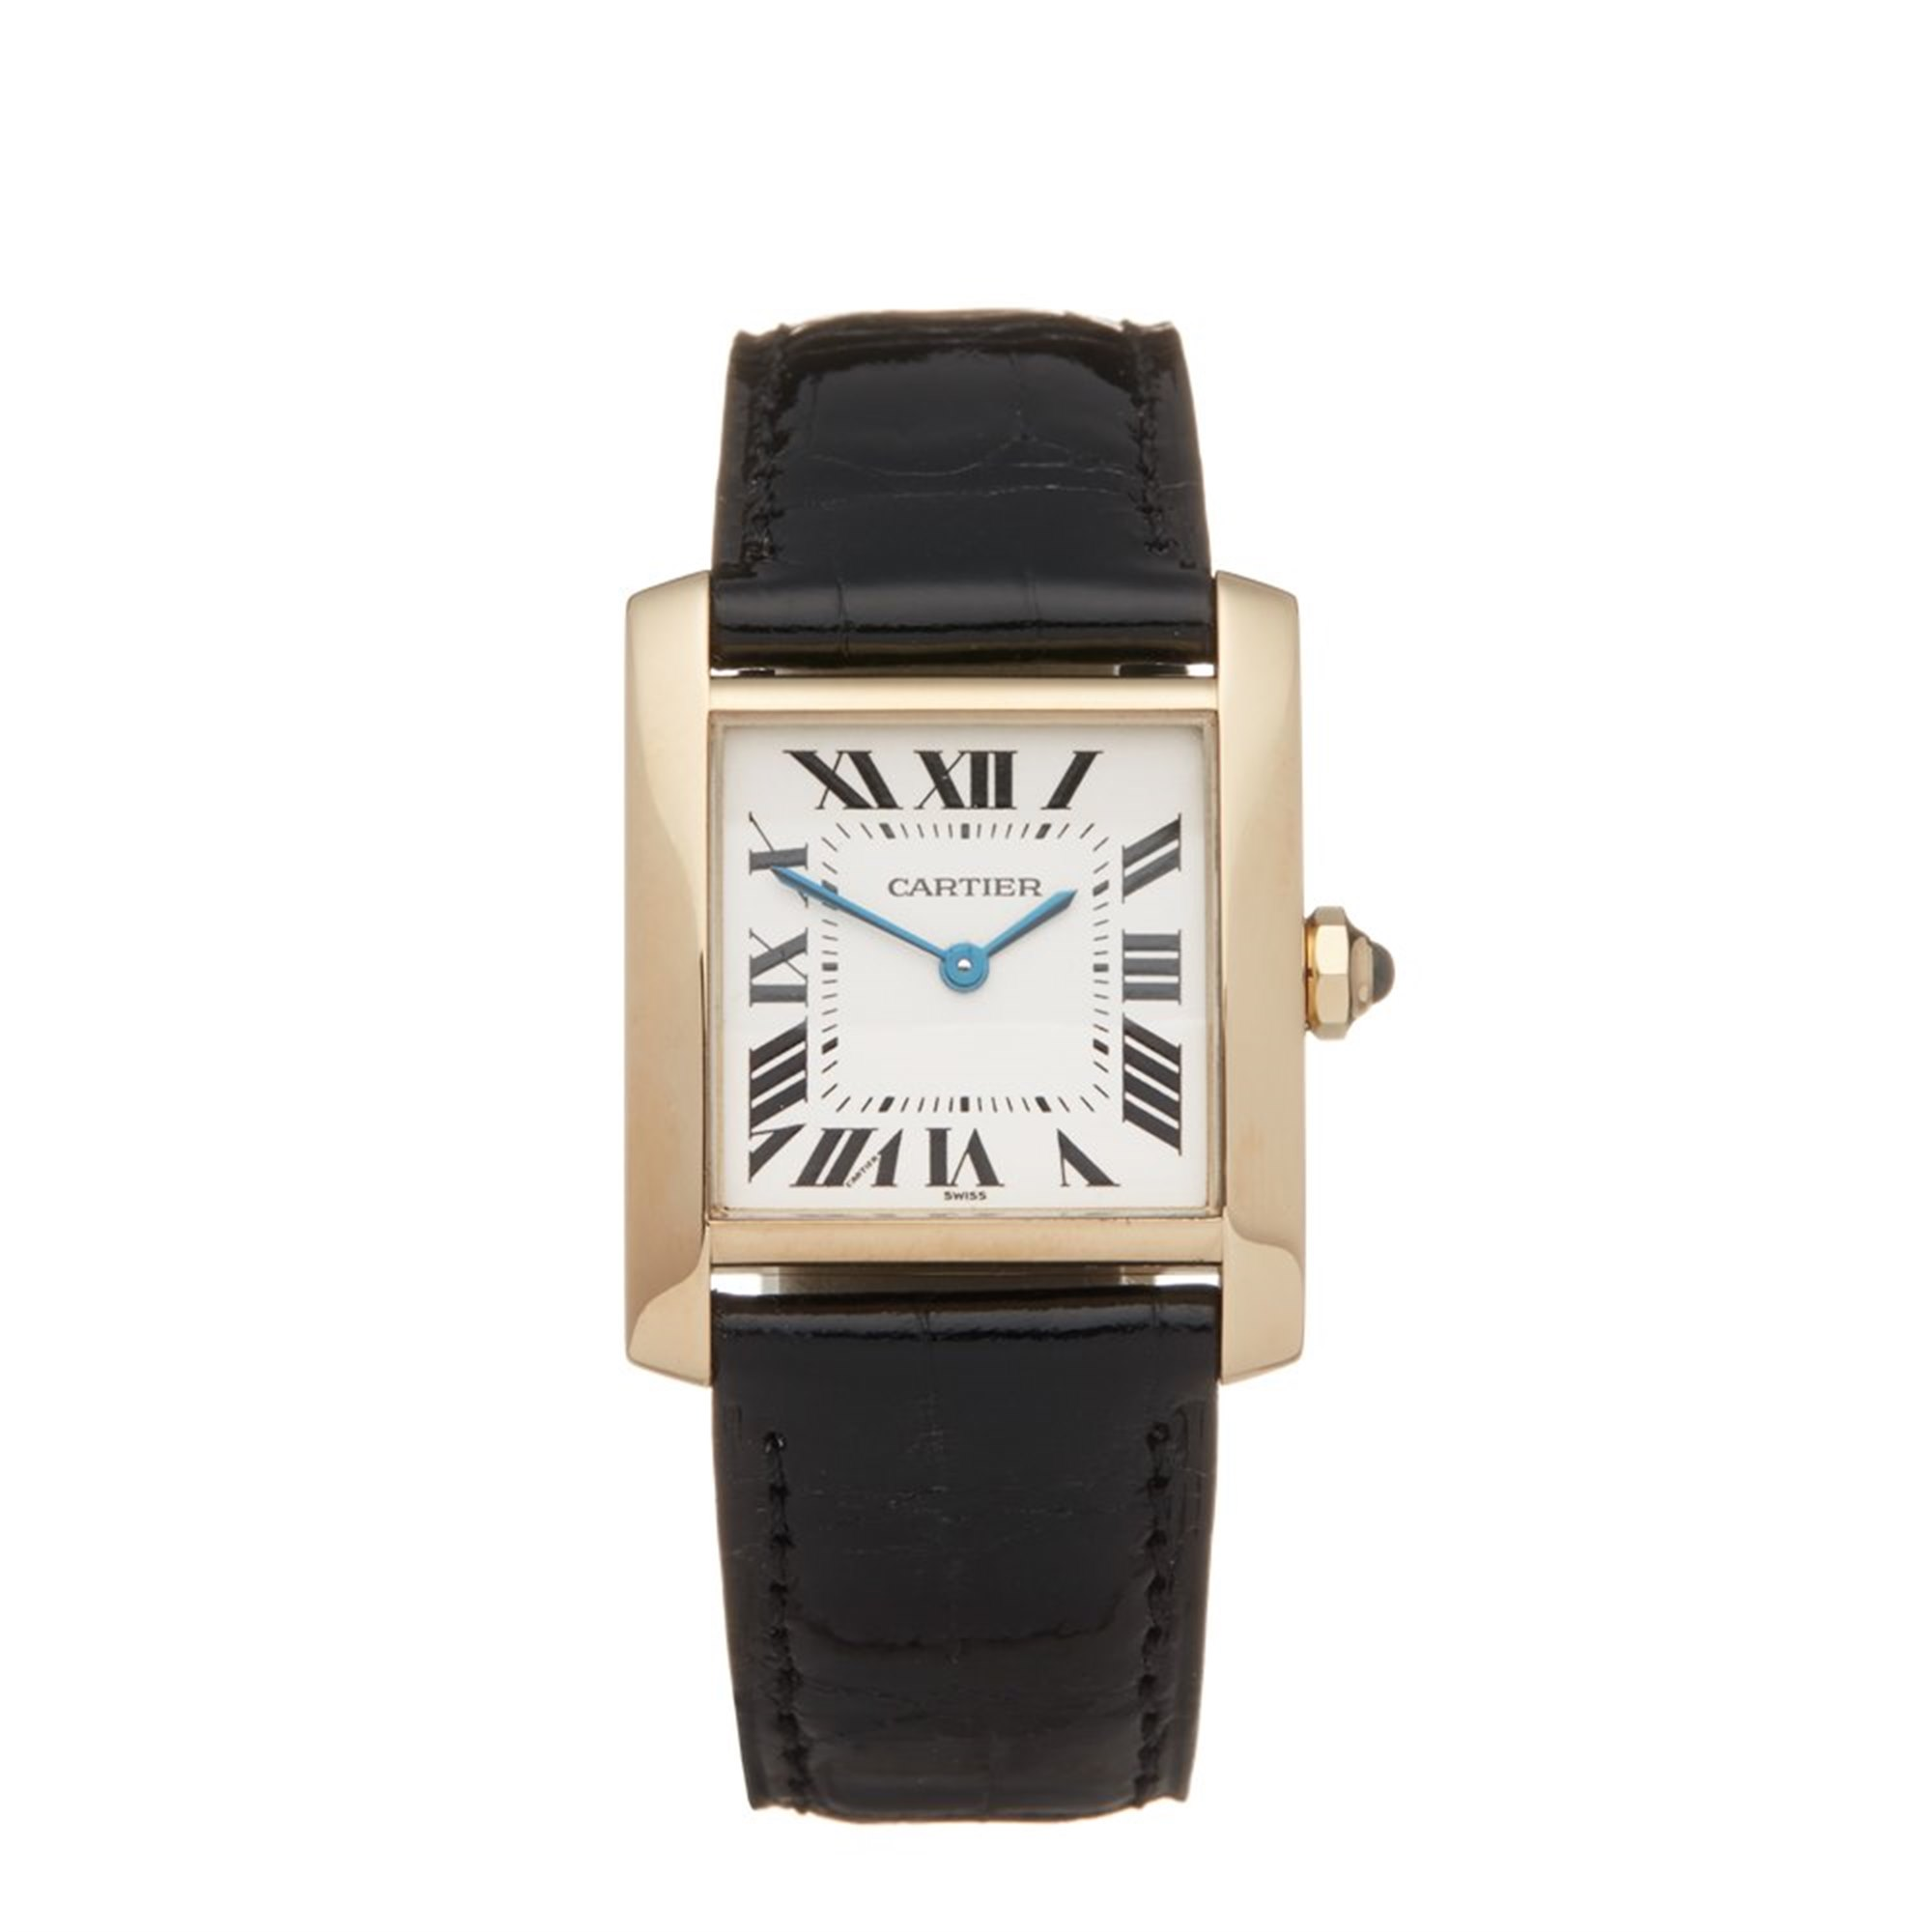 Cartier Tank Francaise 18K Yellow Gold W5000356 or 1821